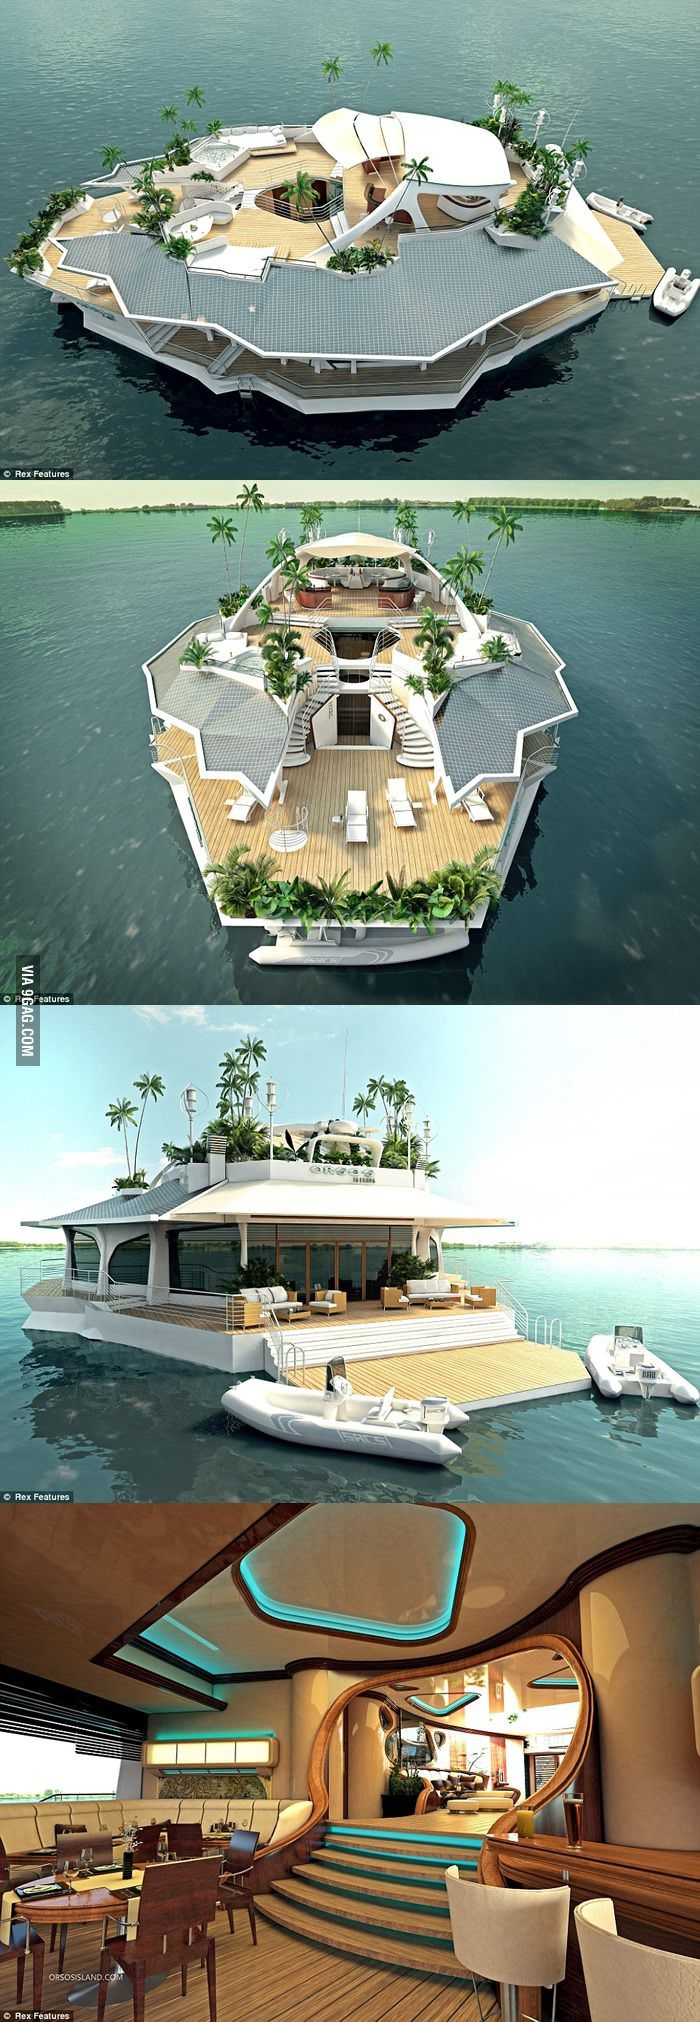 Floating Island Boat, the perfect get away in case a zombie apocalypse or if that the pure thing comes true.